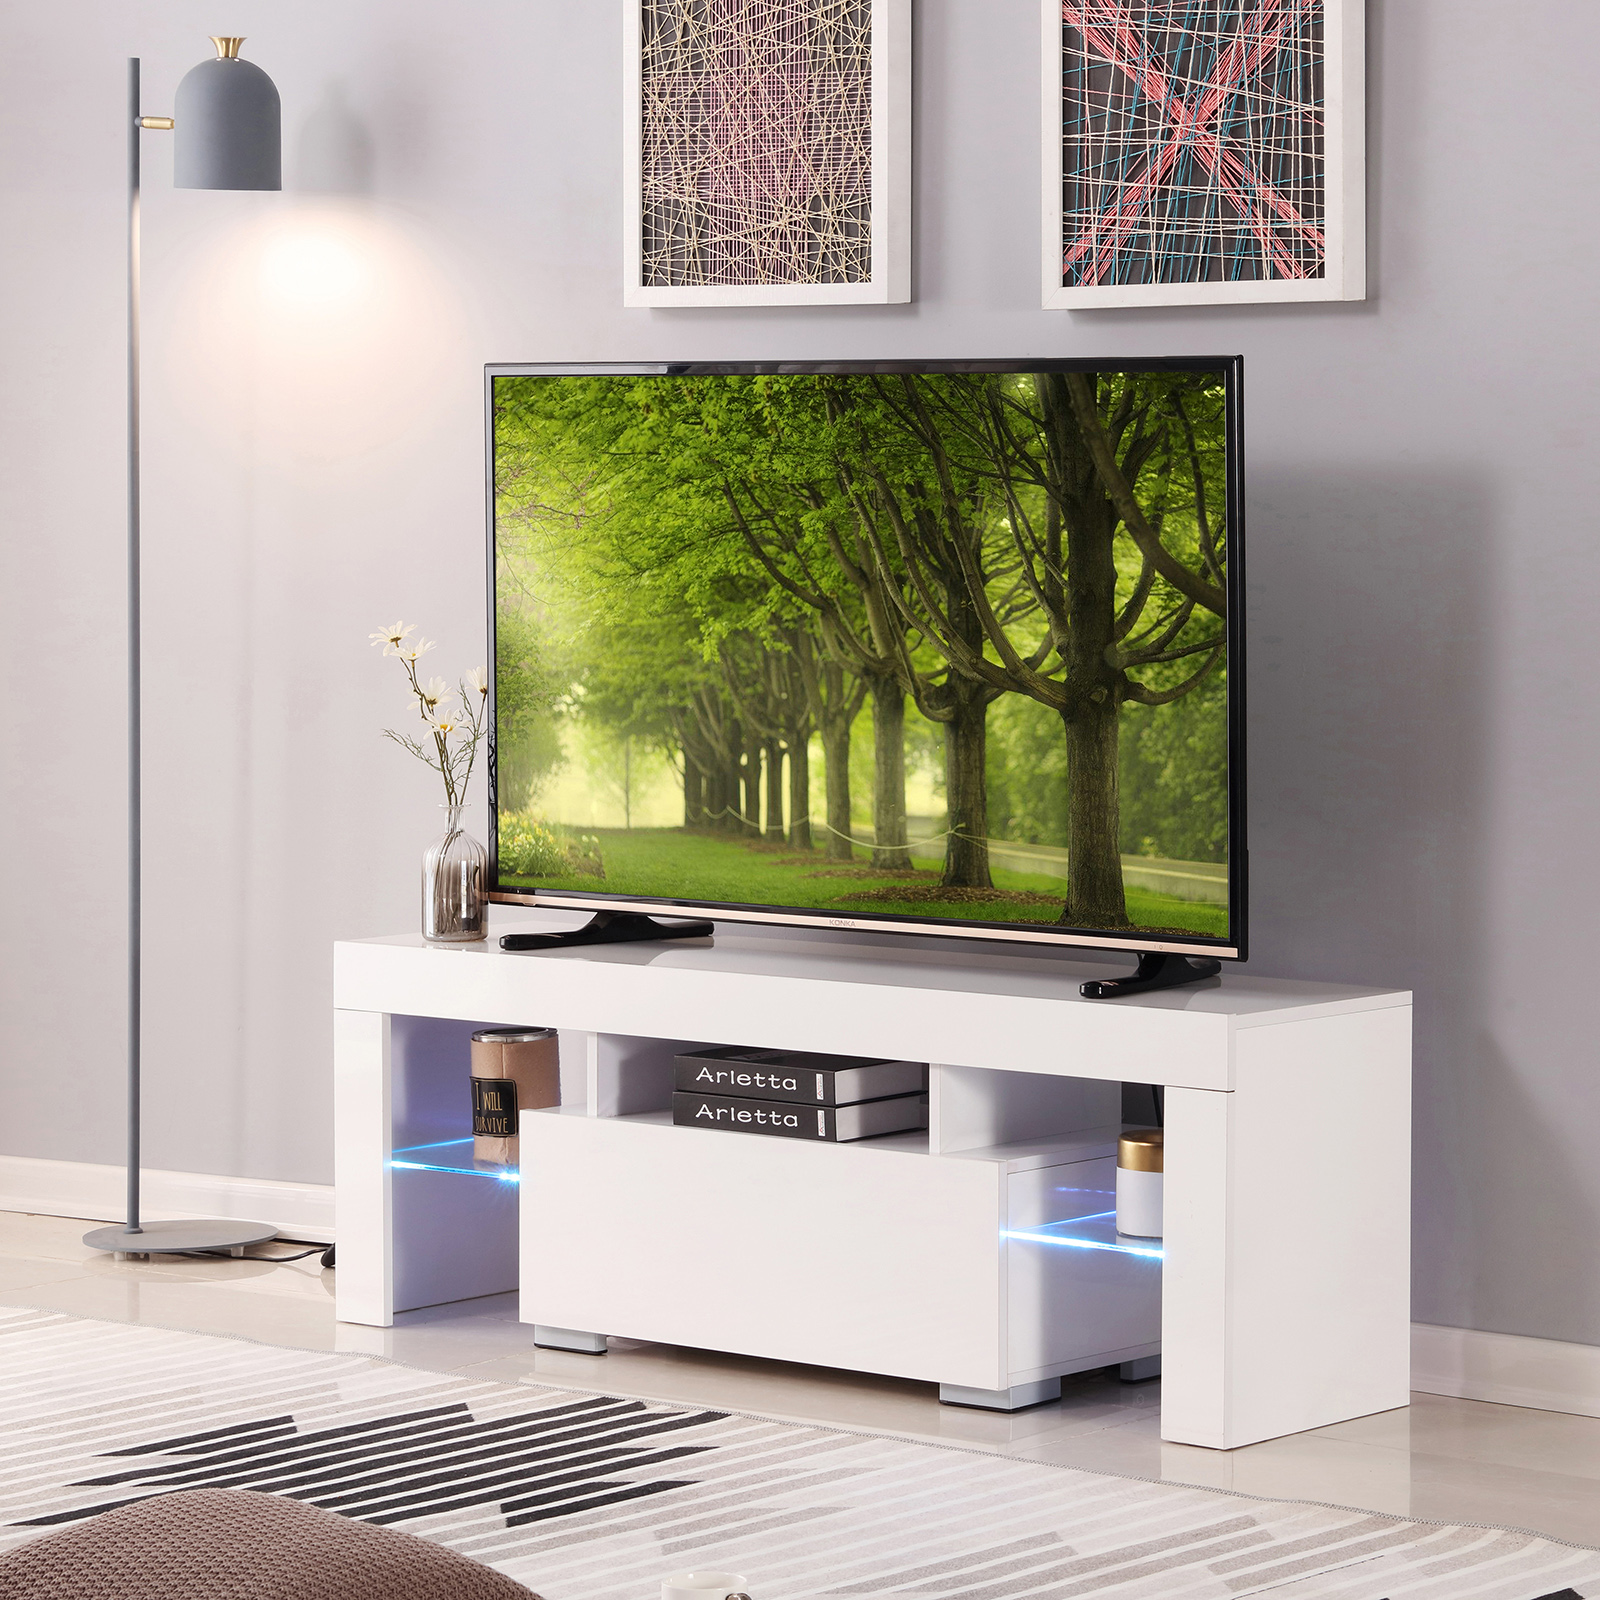 Details About 51 Long Gloss Tv Stands White Entertainment Units Cabinet Furniture Led Light